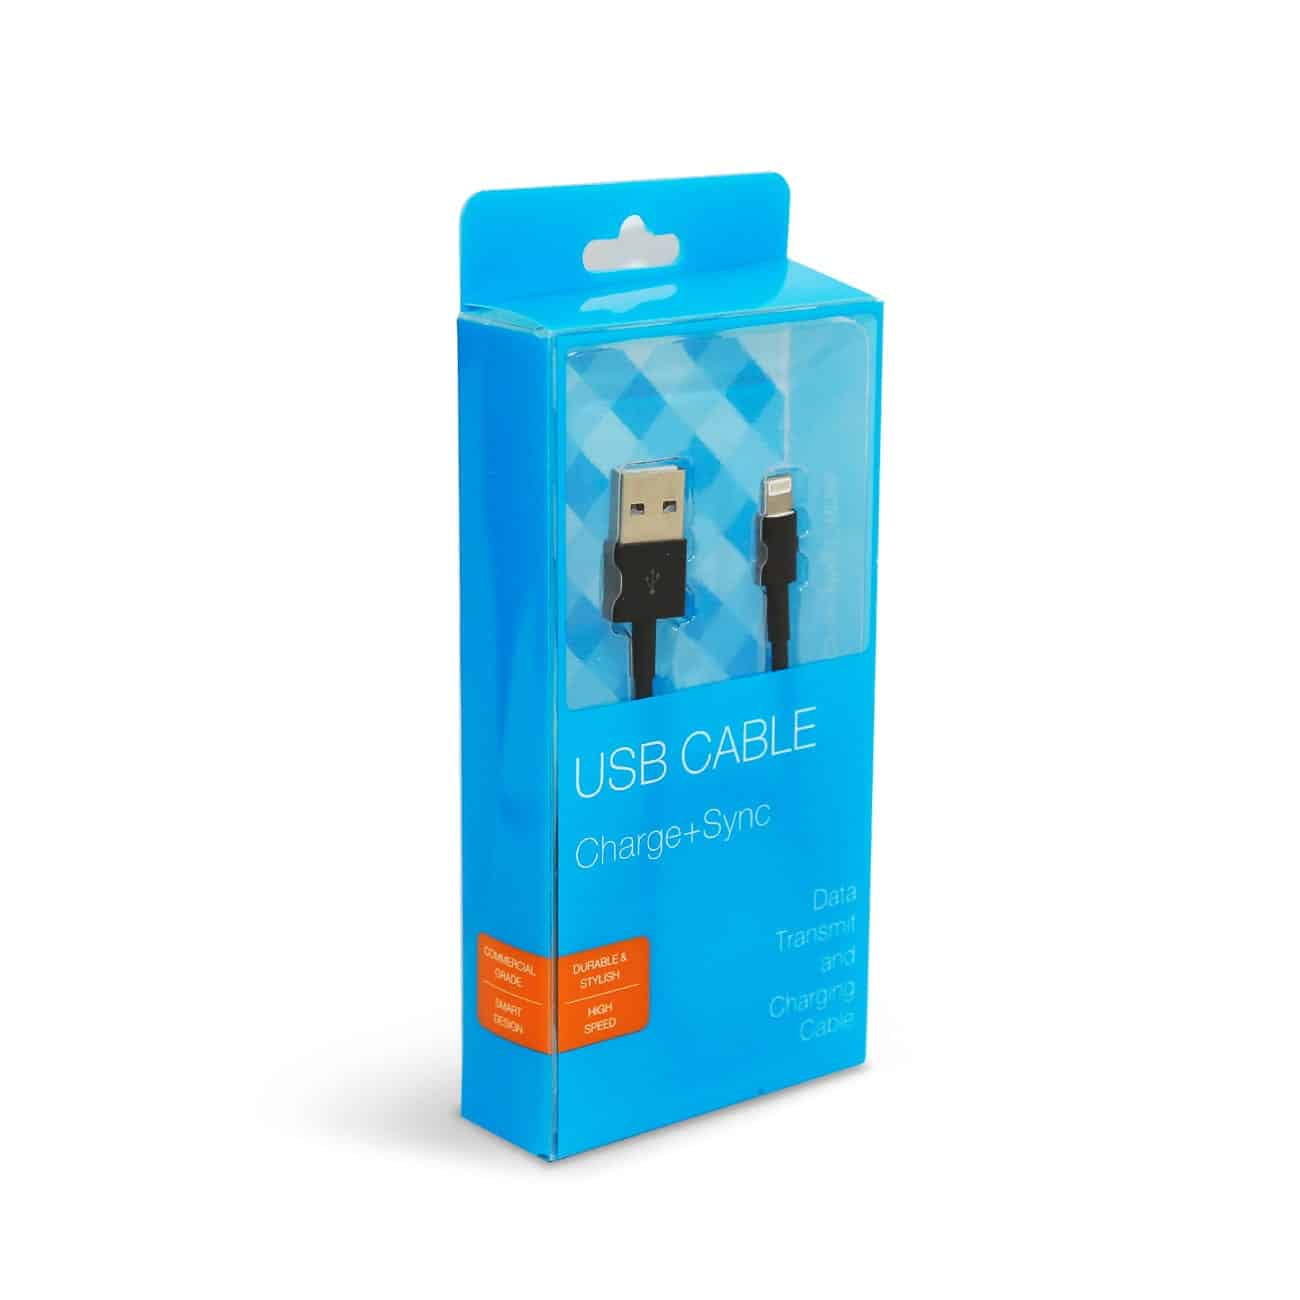 3.3FT PVC Material 8 PIN USB 2.0 Data Cable In Black And Luxury Packaging